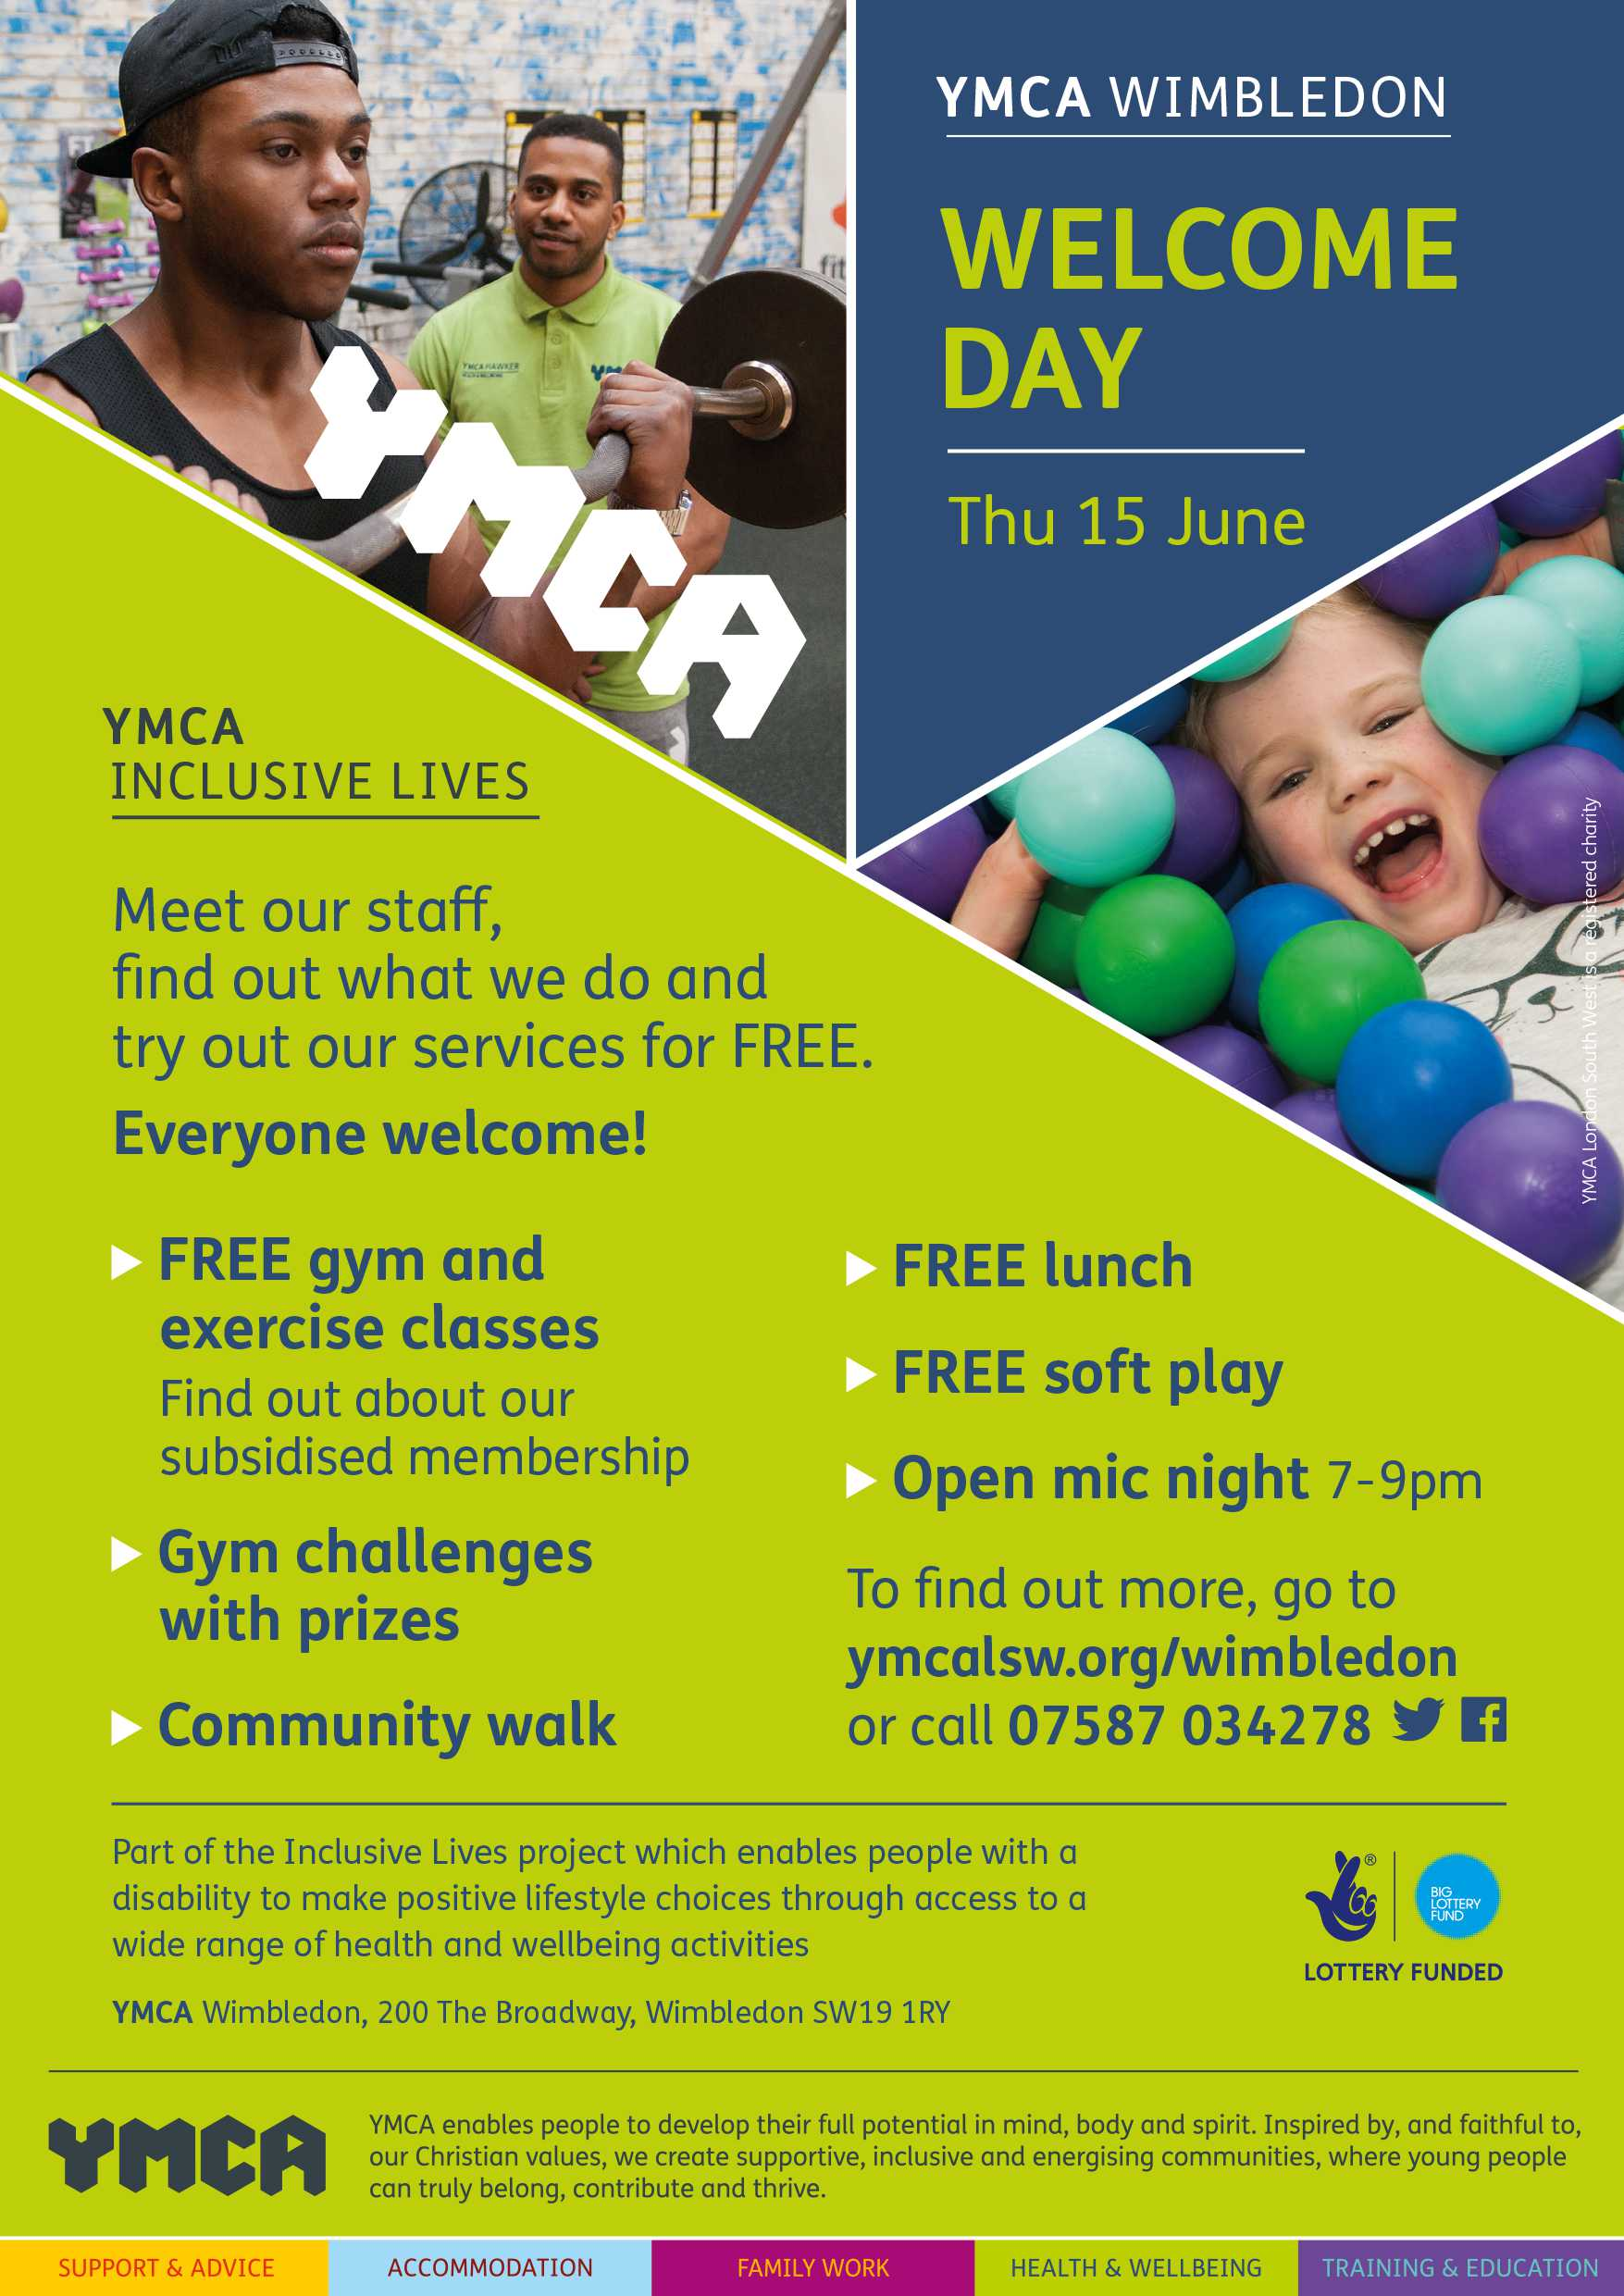 YMCA Wimbledon Welcome Day June 15